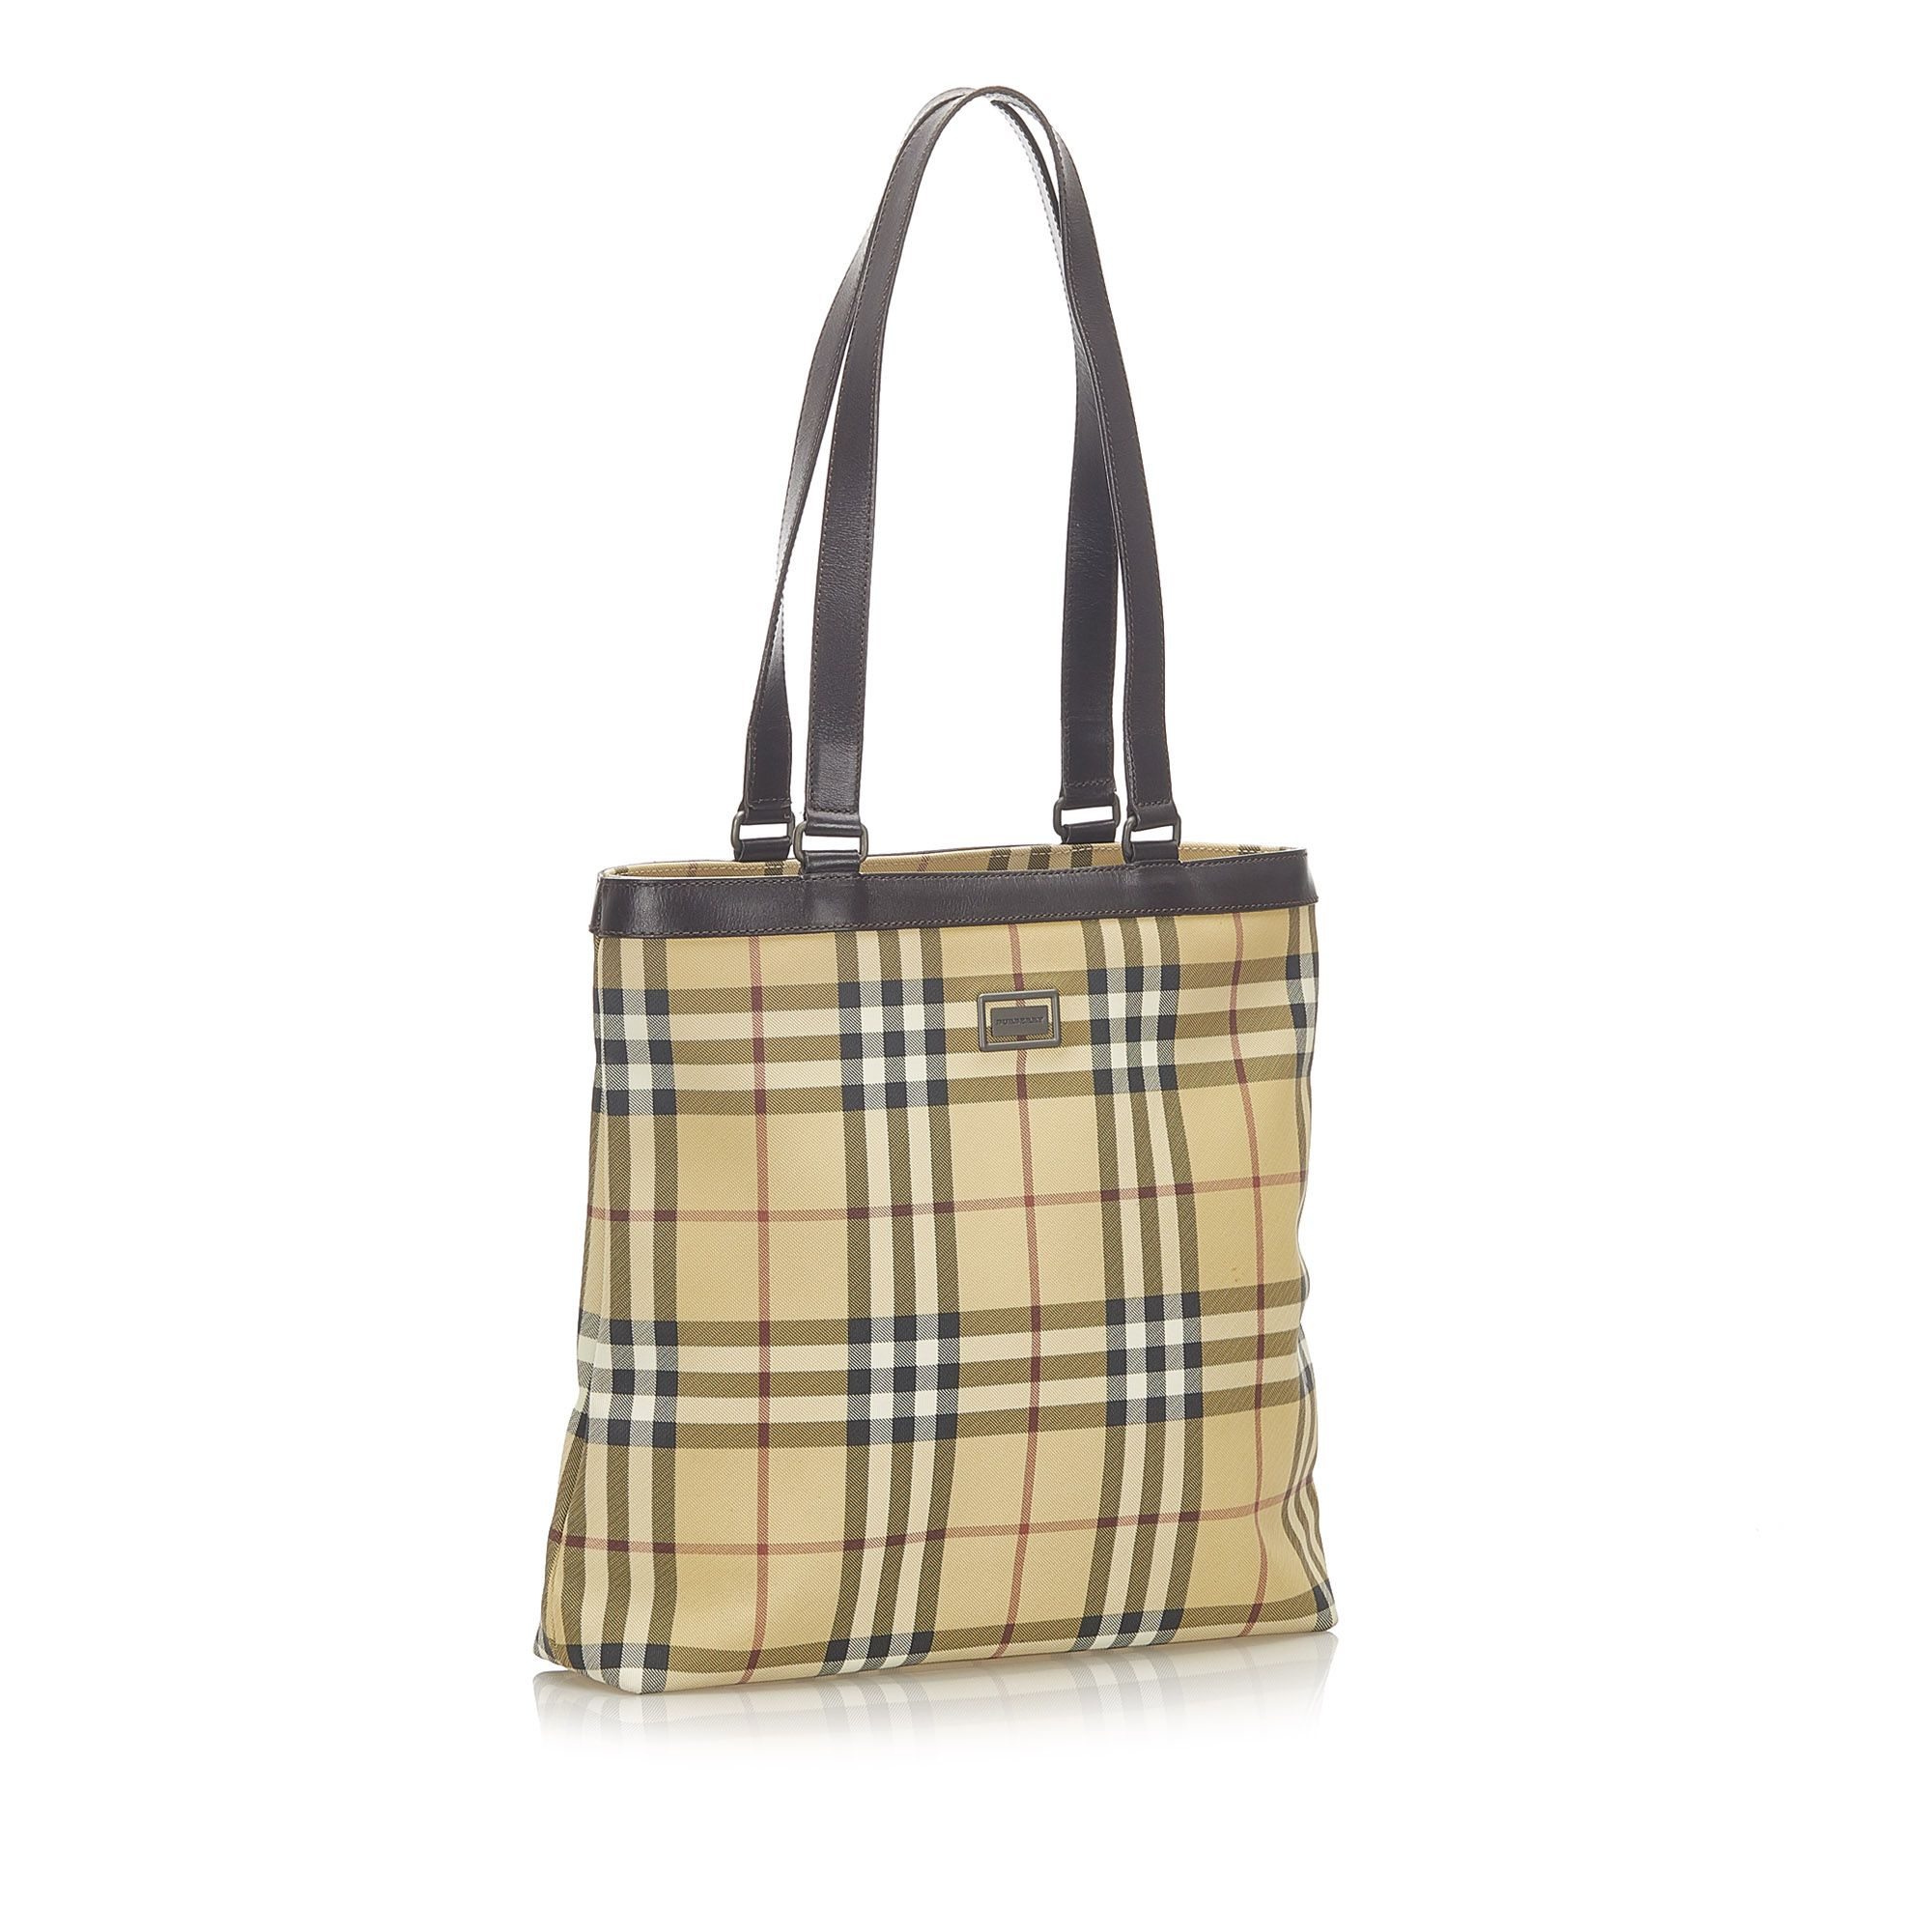 Vintage Burberry House Check Canvas Tote Bag Brown